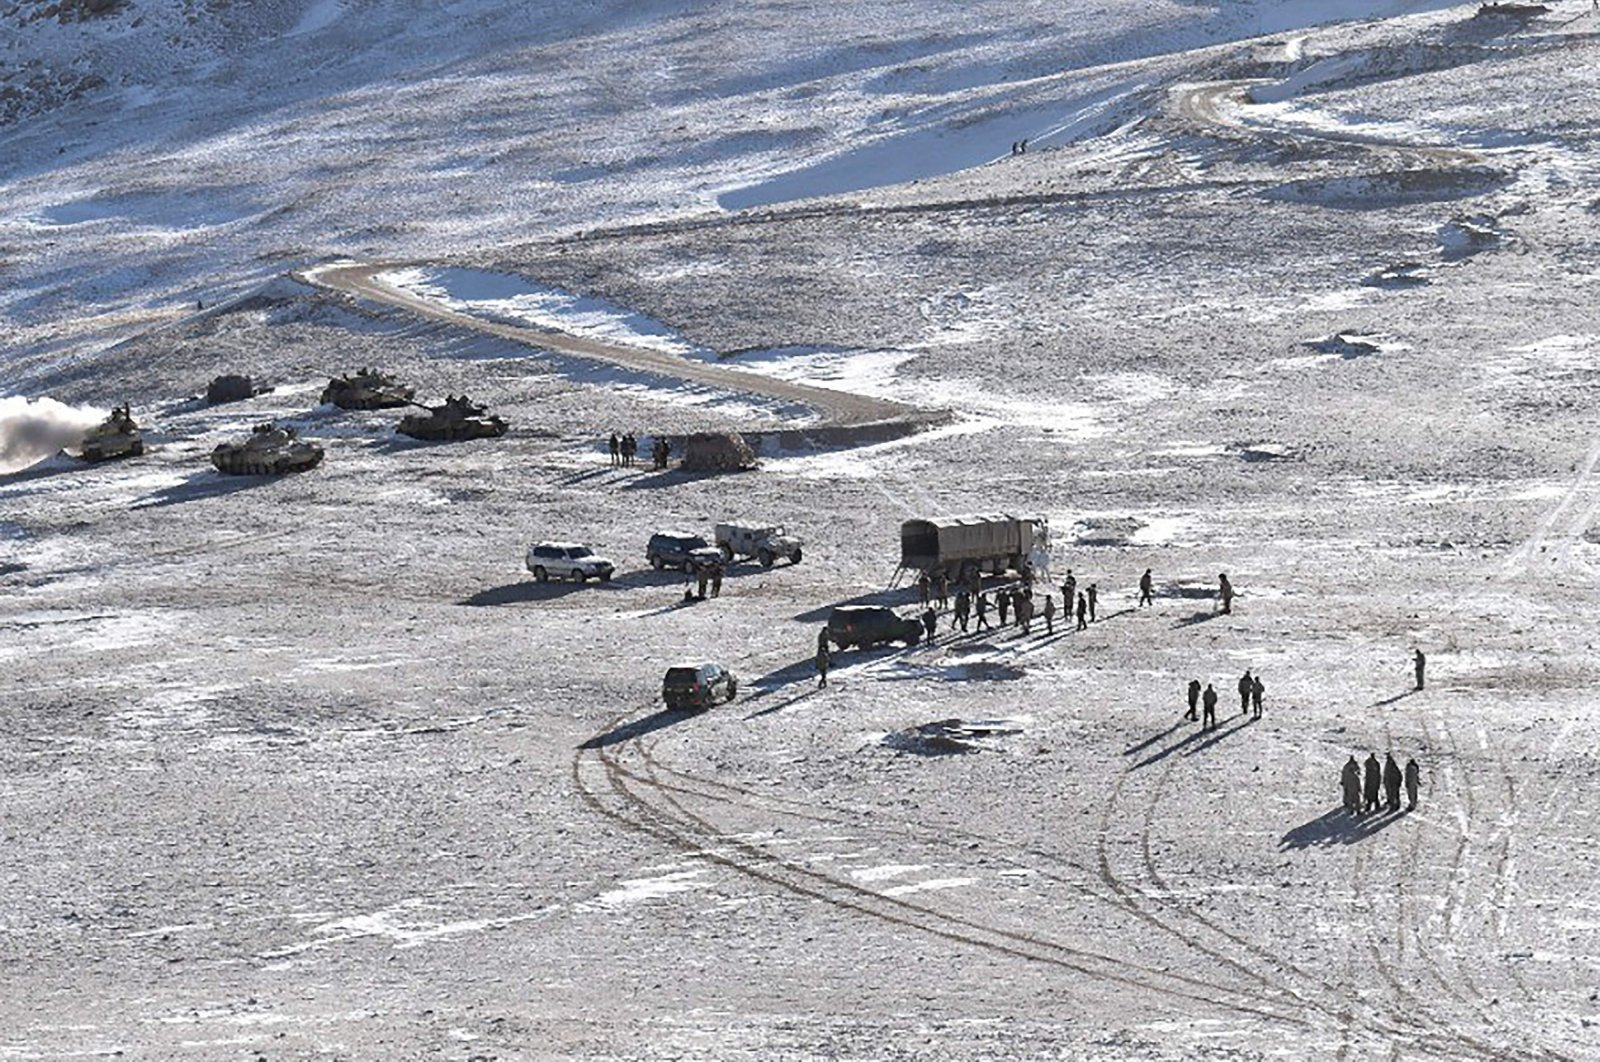 This undated handout photograph released by the Indian Army shows Chinese People Liberation Army (PLA) soldiers and tanks during military disengagement along the Line of Actual Control (LAC) at the India-China border in Ladakh, Feb. 16, 2021. (AFP Photo)